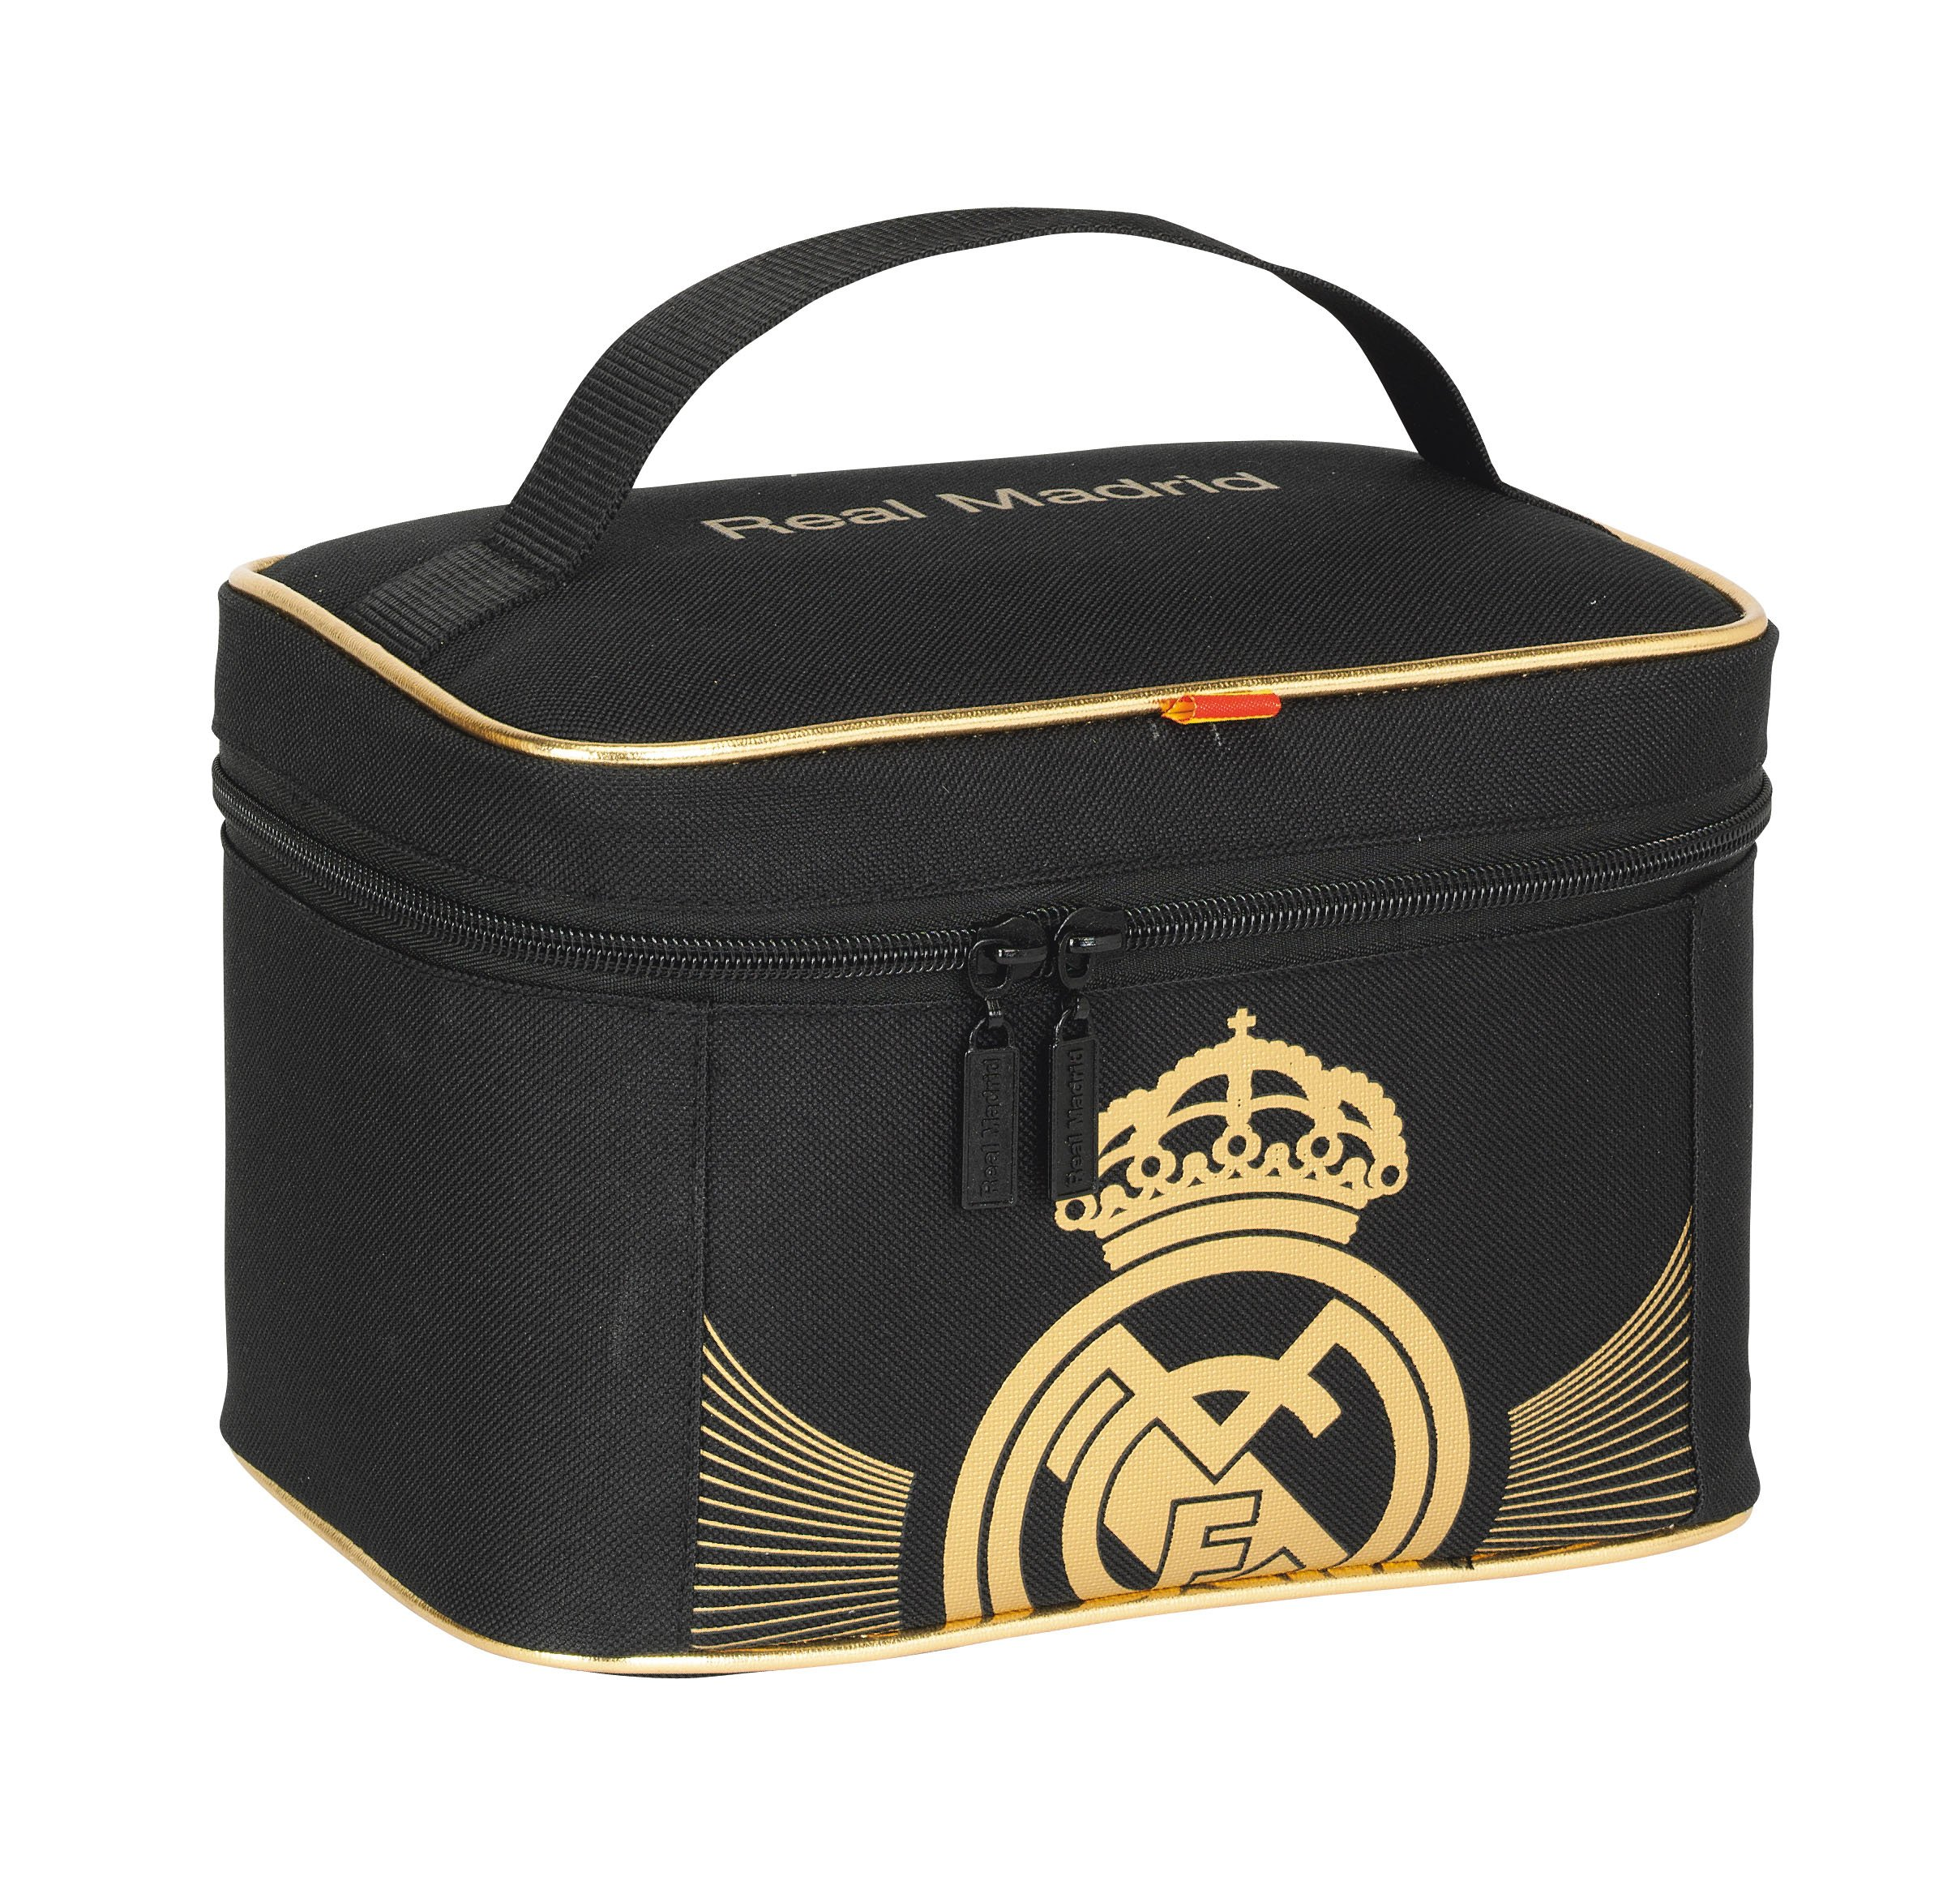 Real Madrid – Neceser, 23 cm (Safta 8 11257 331)